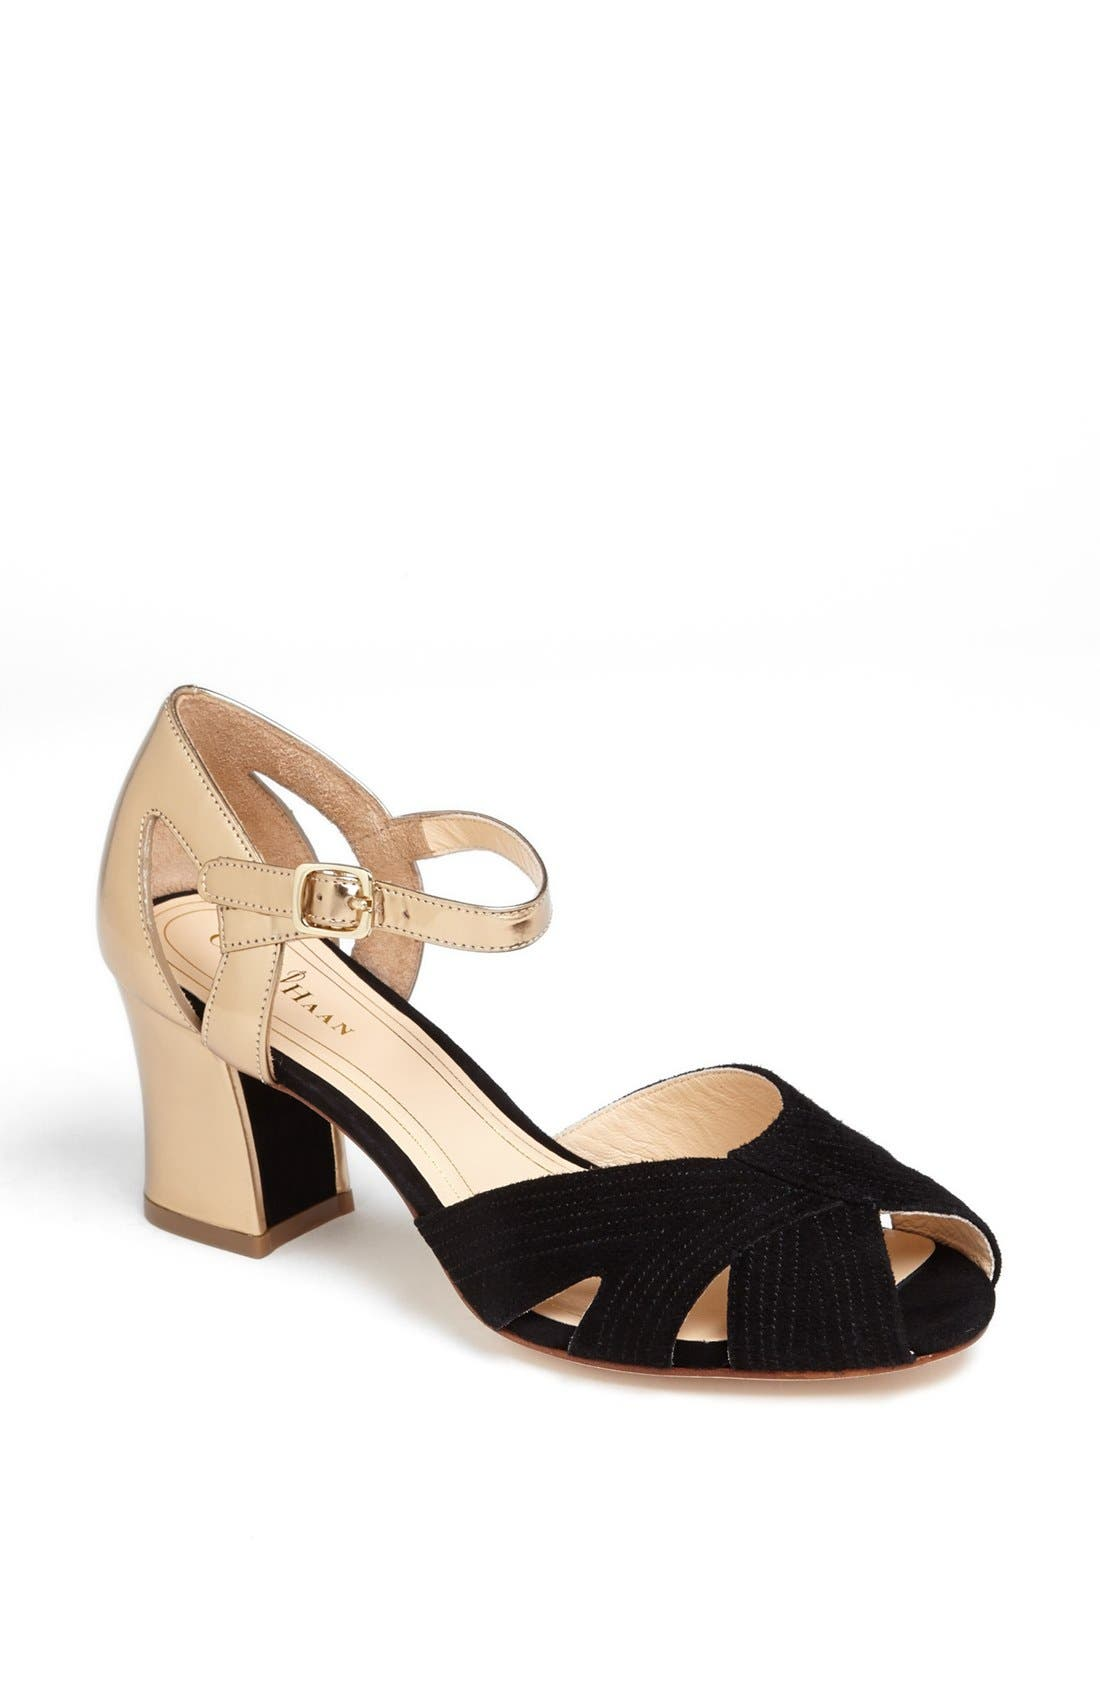 Alternate Image 1 Selected - Cole Haan 'Jovie' Chunky Heel Sandal